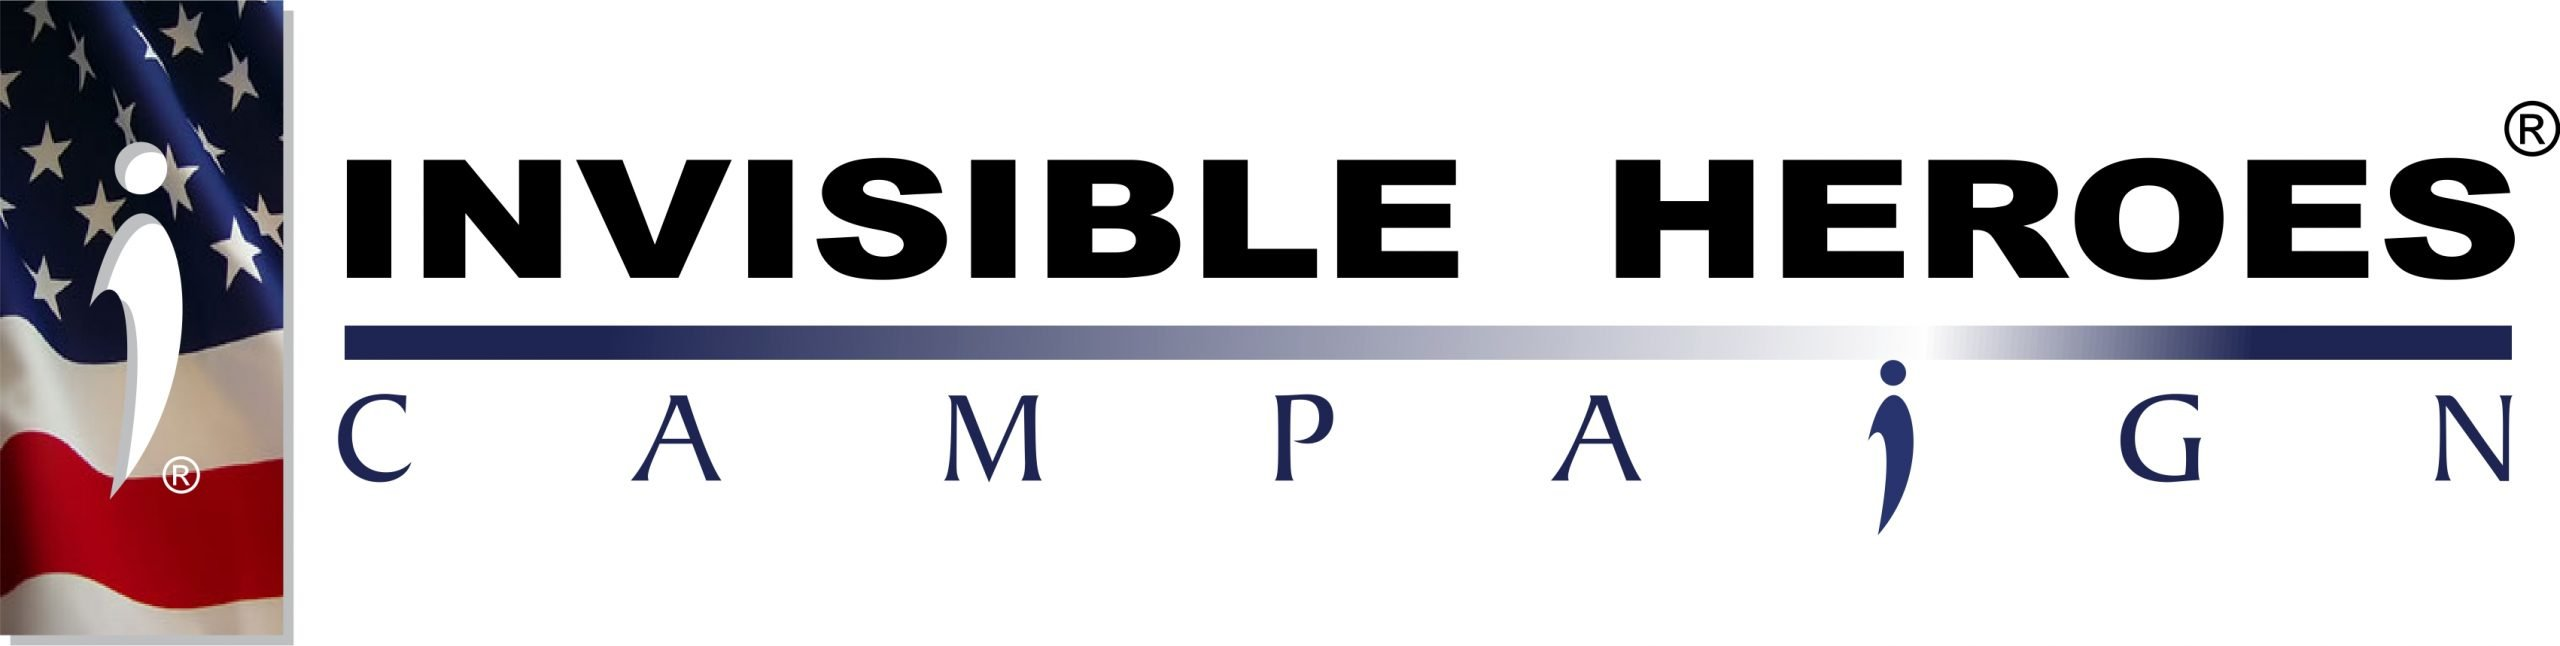 Invisible Heroes Campaign Logo - Invisible Disabilities Association